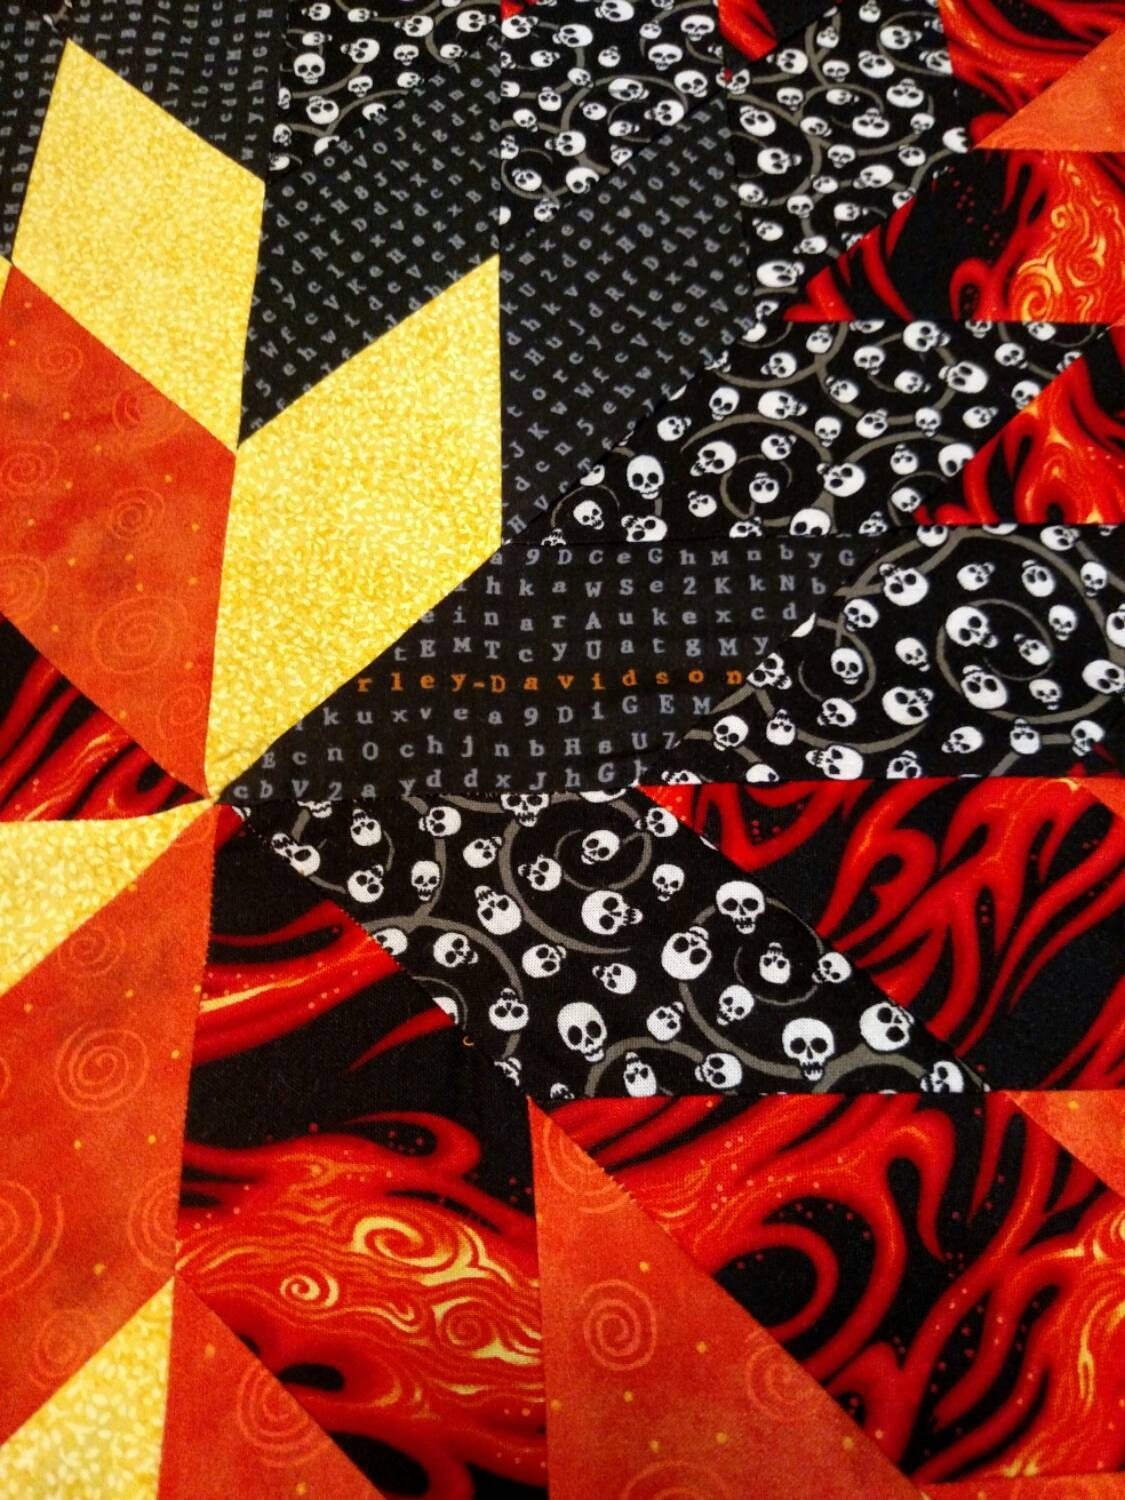 Harley Davidson Flaming Star Quilt With By